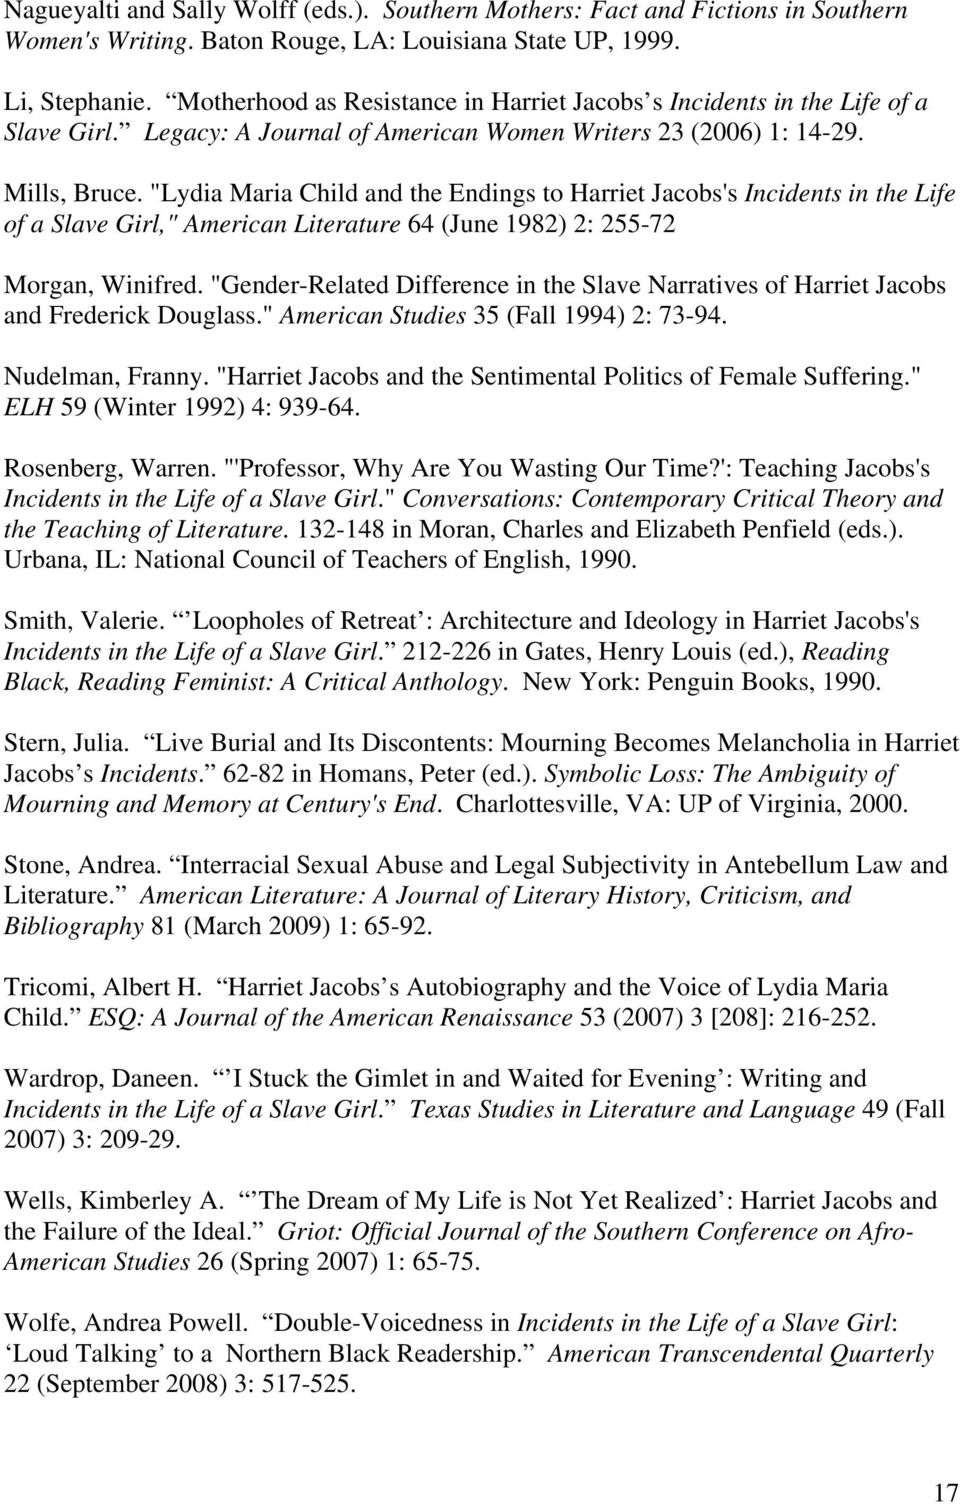 differences between harriet jacobs and frederick douglas narratives An essay or paper on harriet jacobs and frederick douglass comparison of two experiences of slavery harriet jacobs and frederick douglas, both of whom were born into slavery, described their experiences in passionate, compelling narratives.